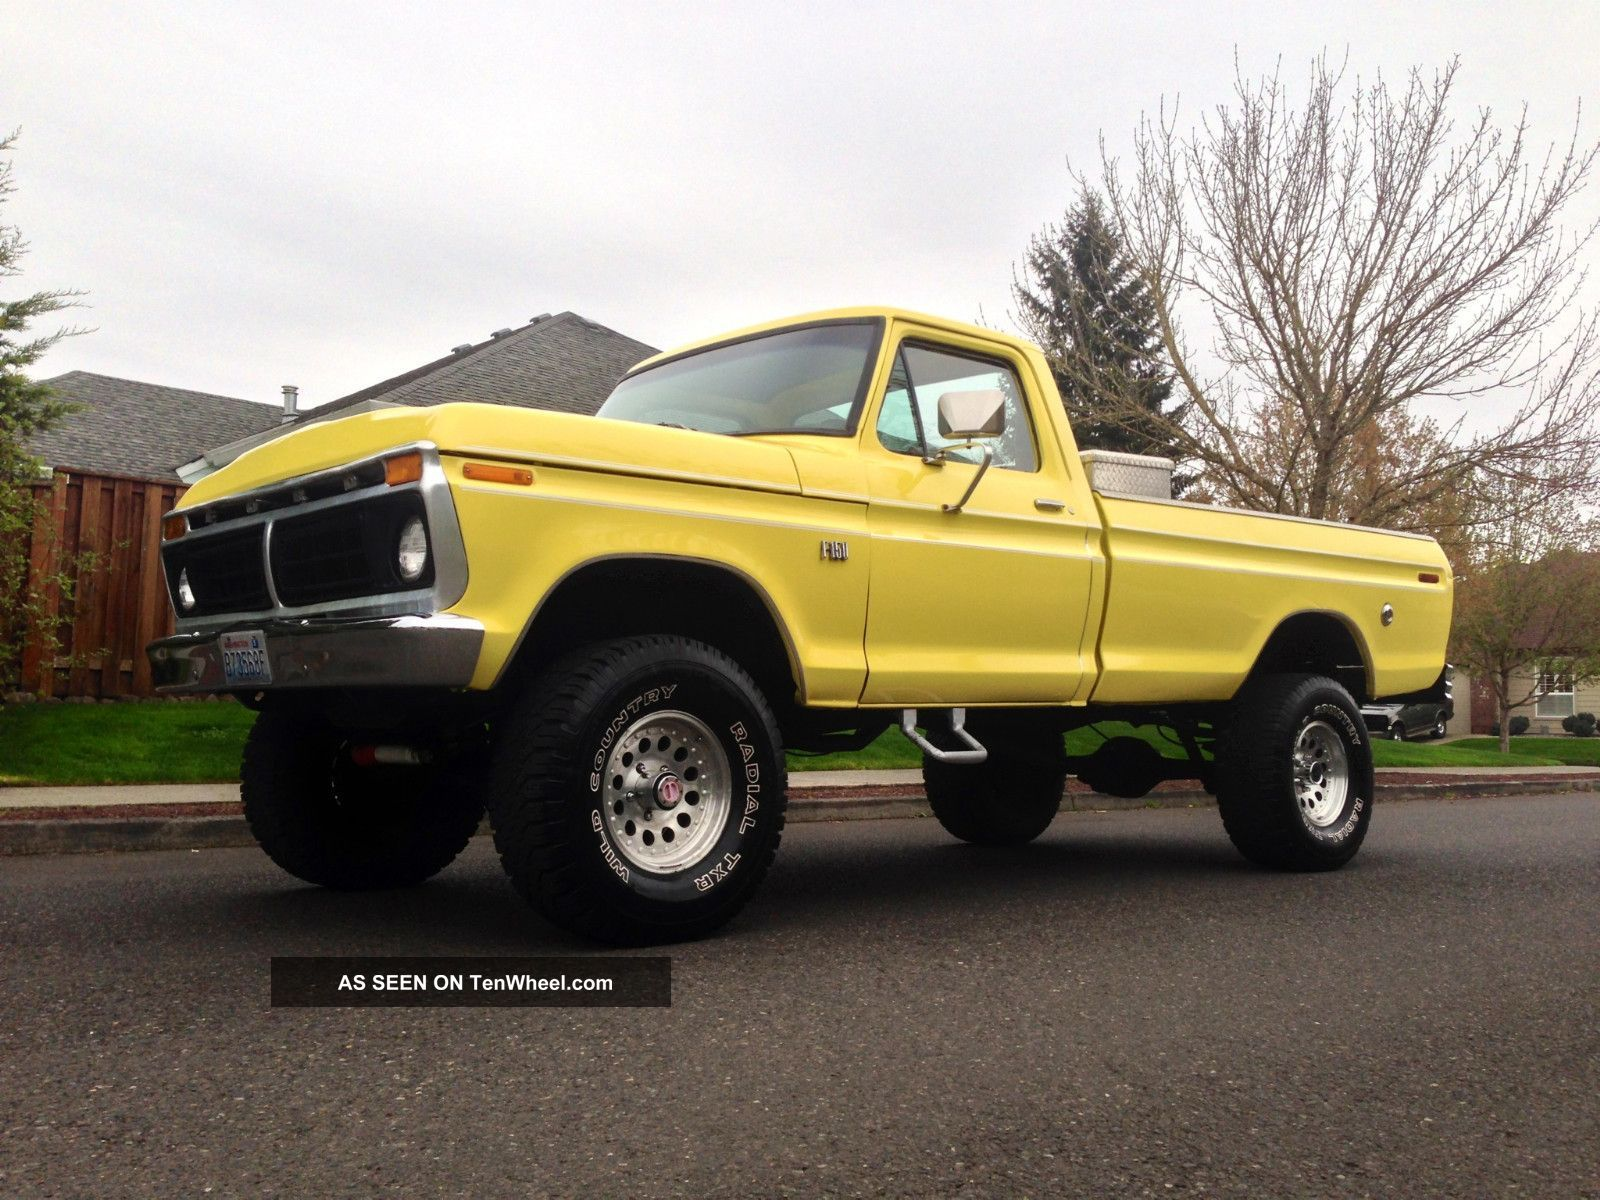 hight resolution of 1976 ford f150 ranger 4x4 xlt longbed 1977 1975 1978 1974 f 150 photo